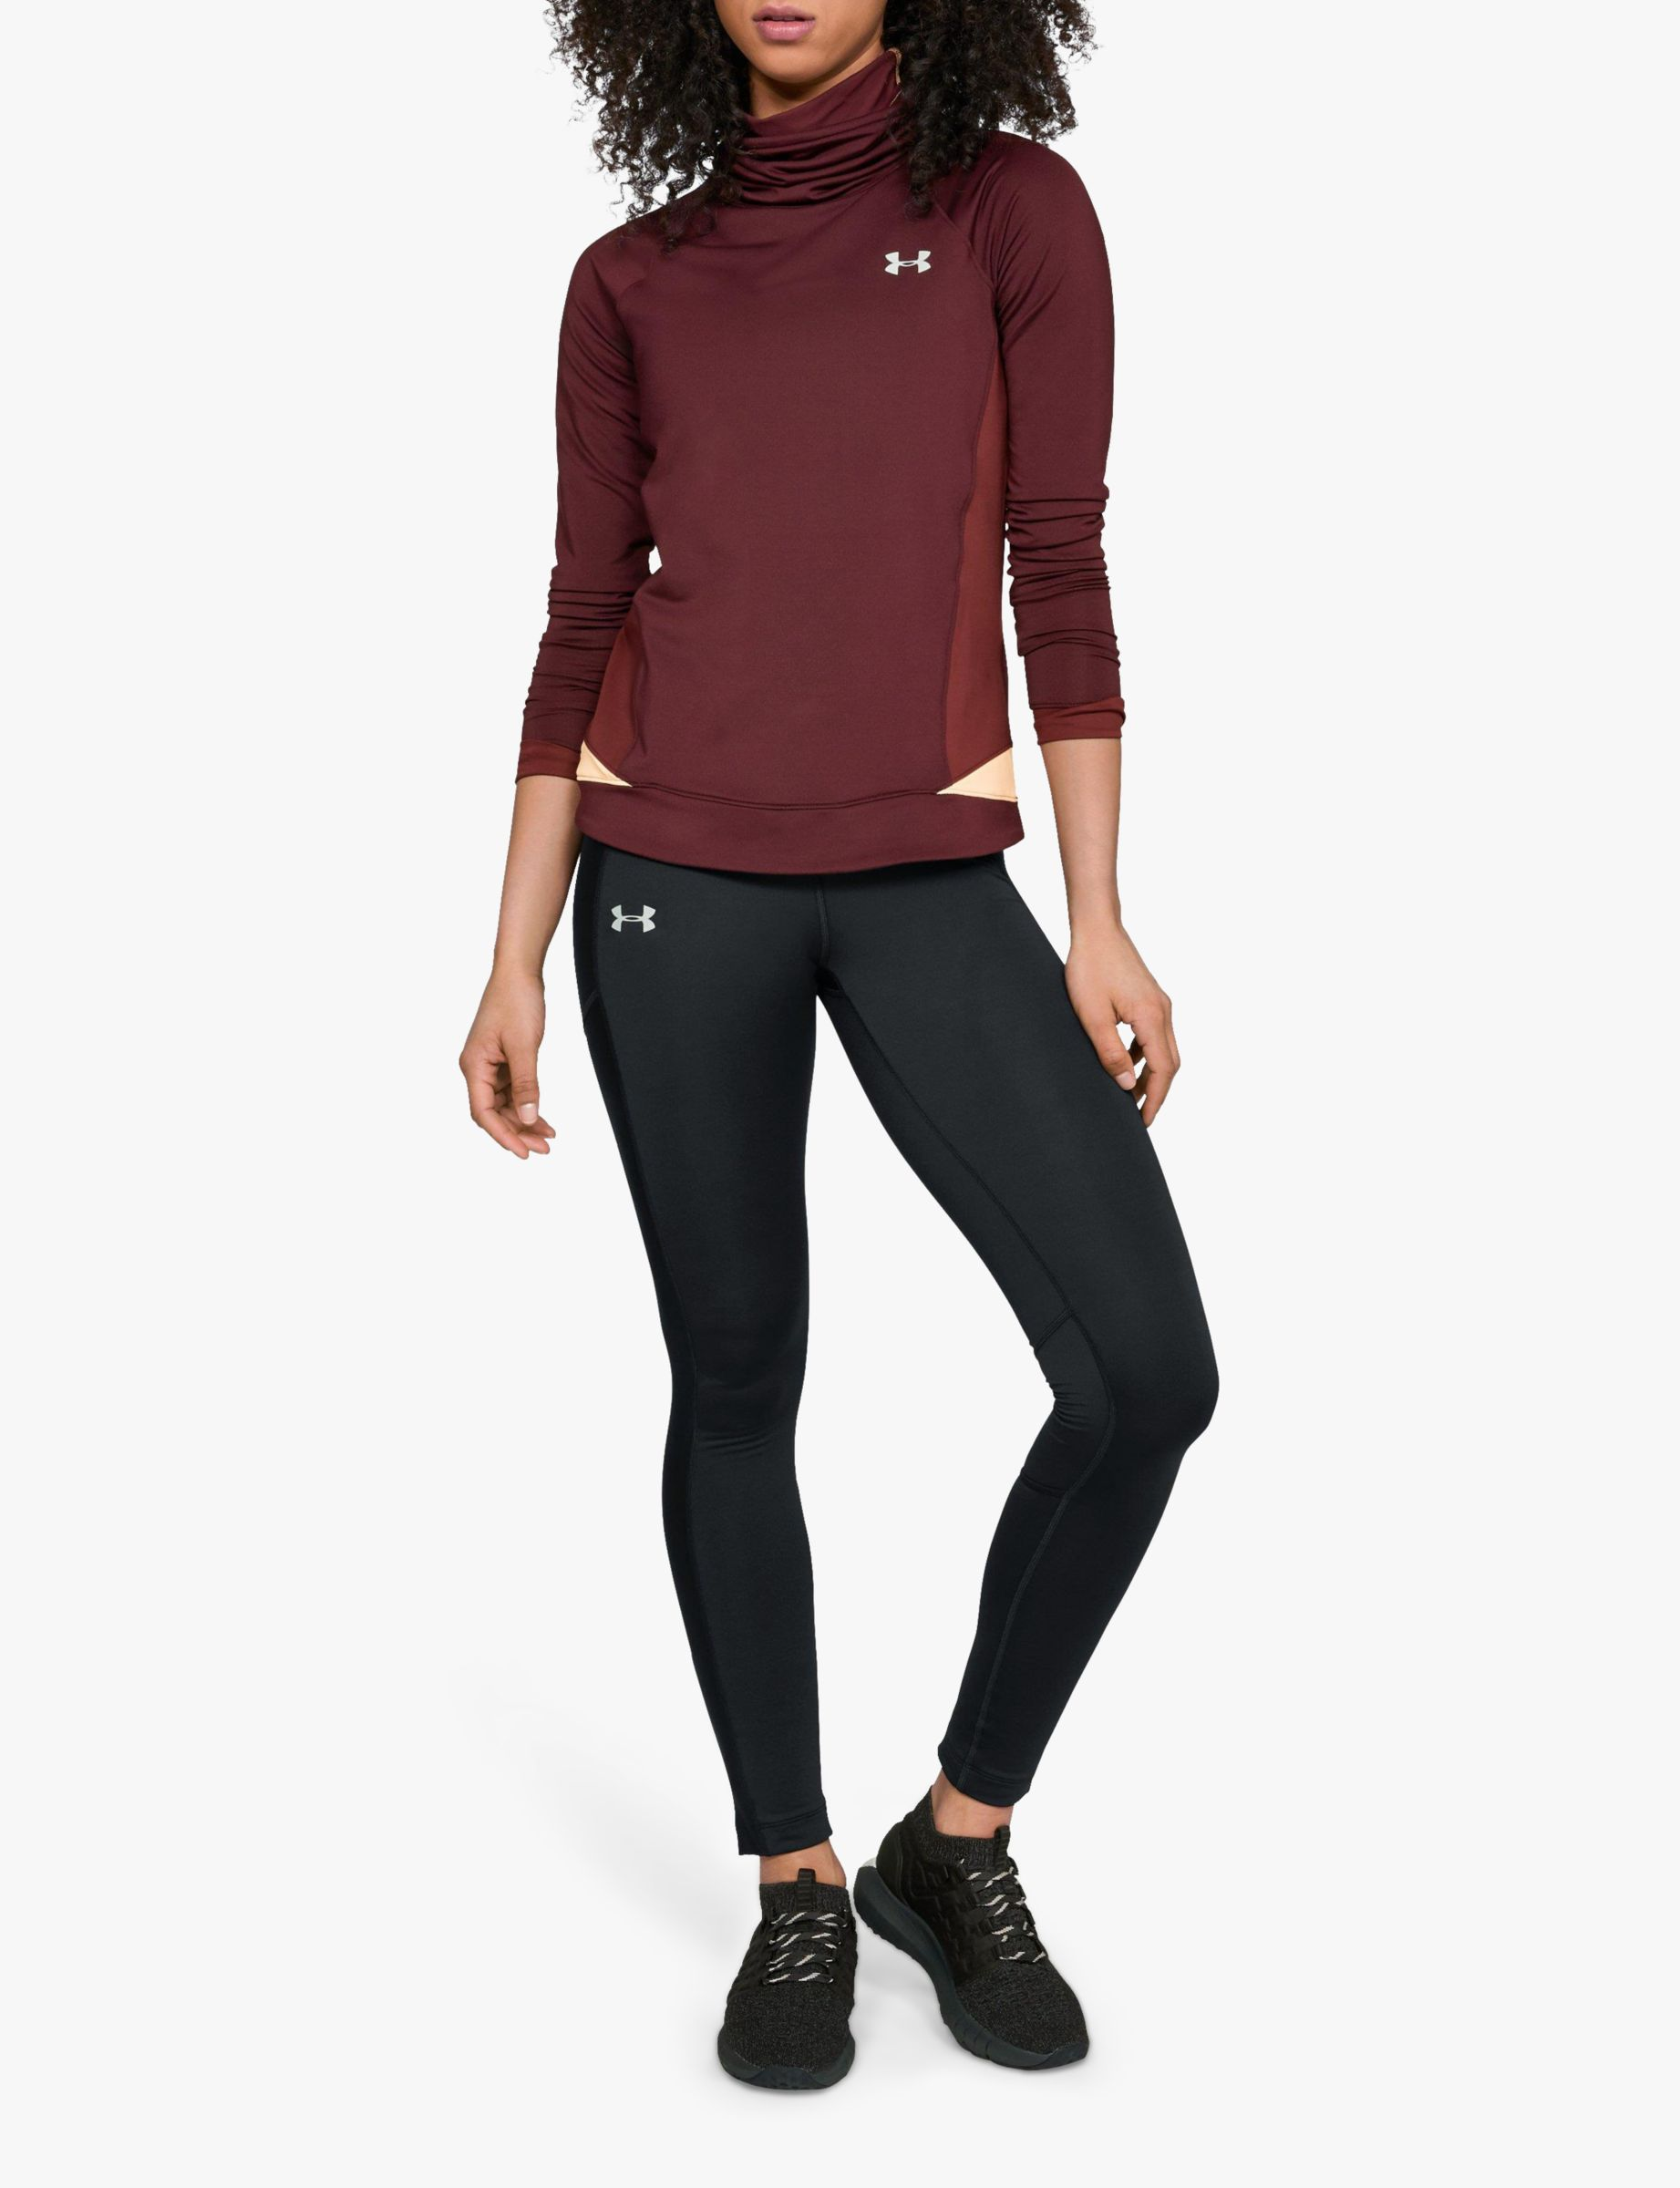 22a27c233 Under Armour ColdGear Run Storm Running Tights, Black at John Lewis &  Partners